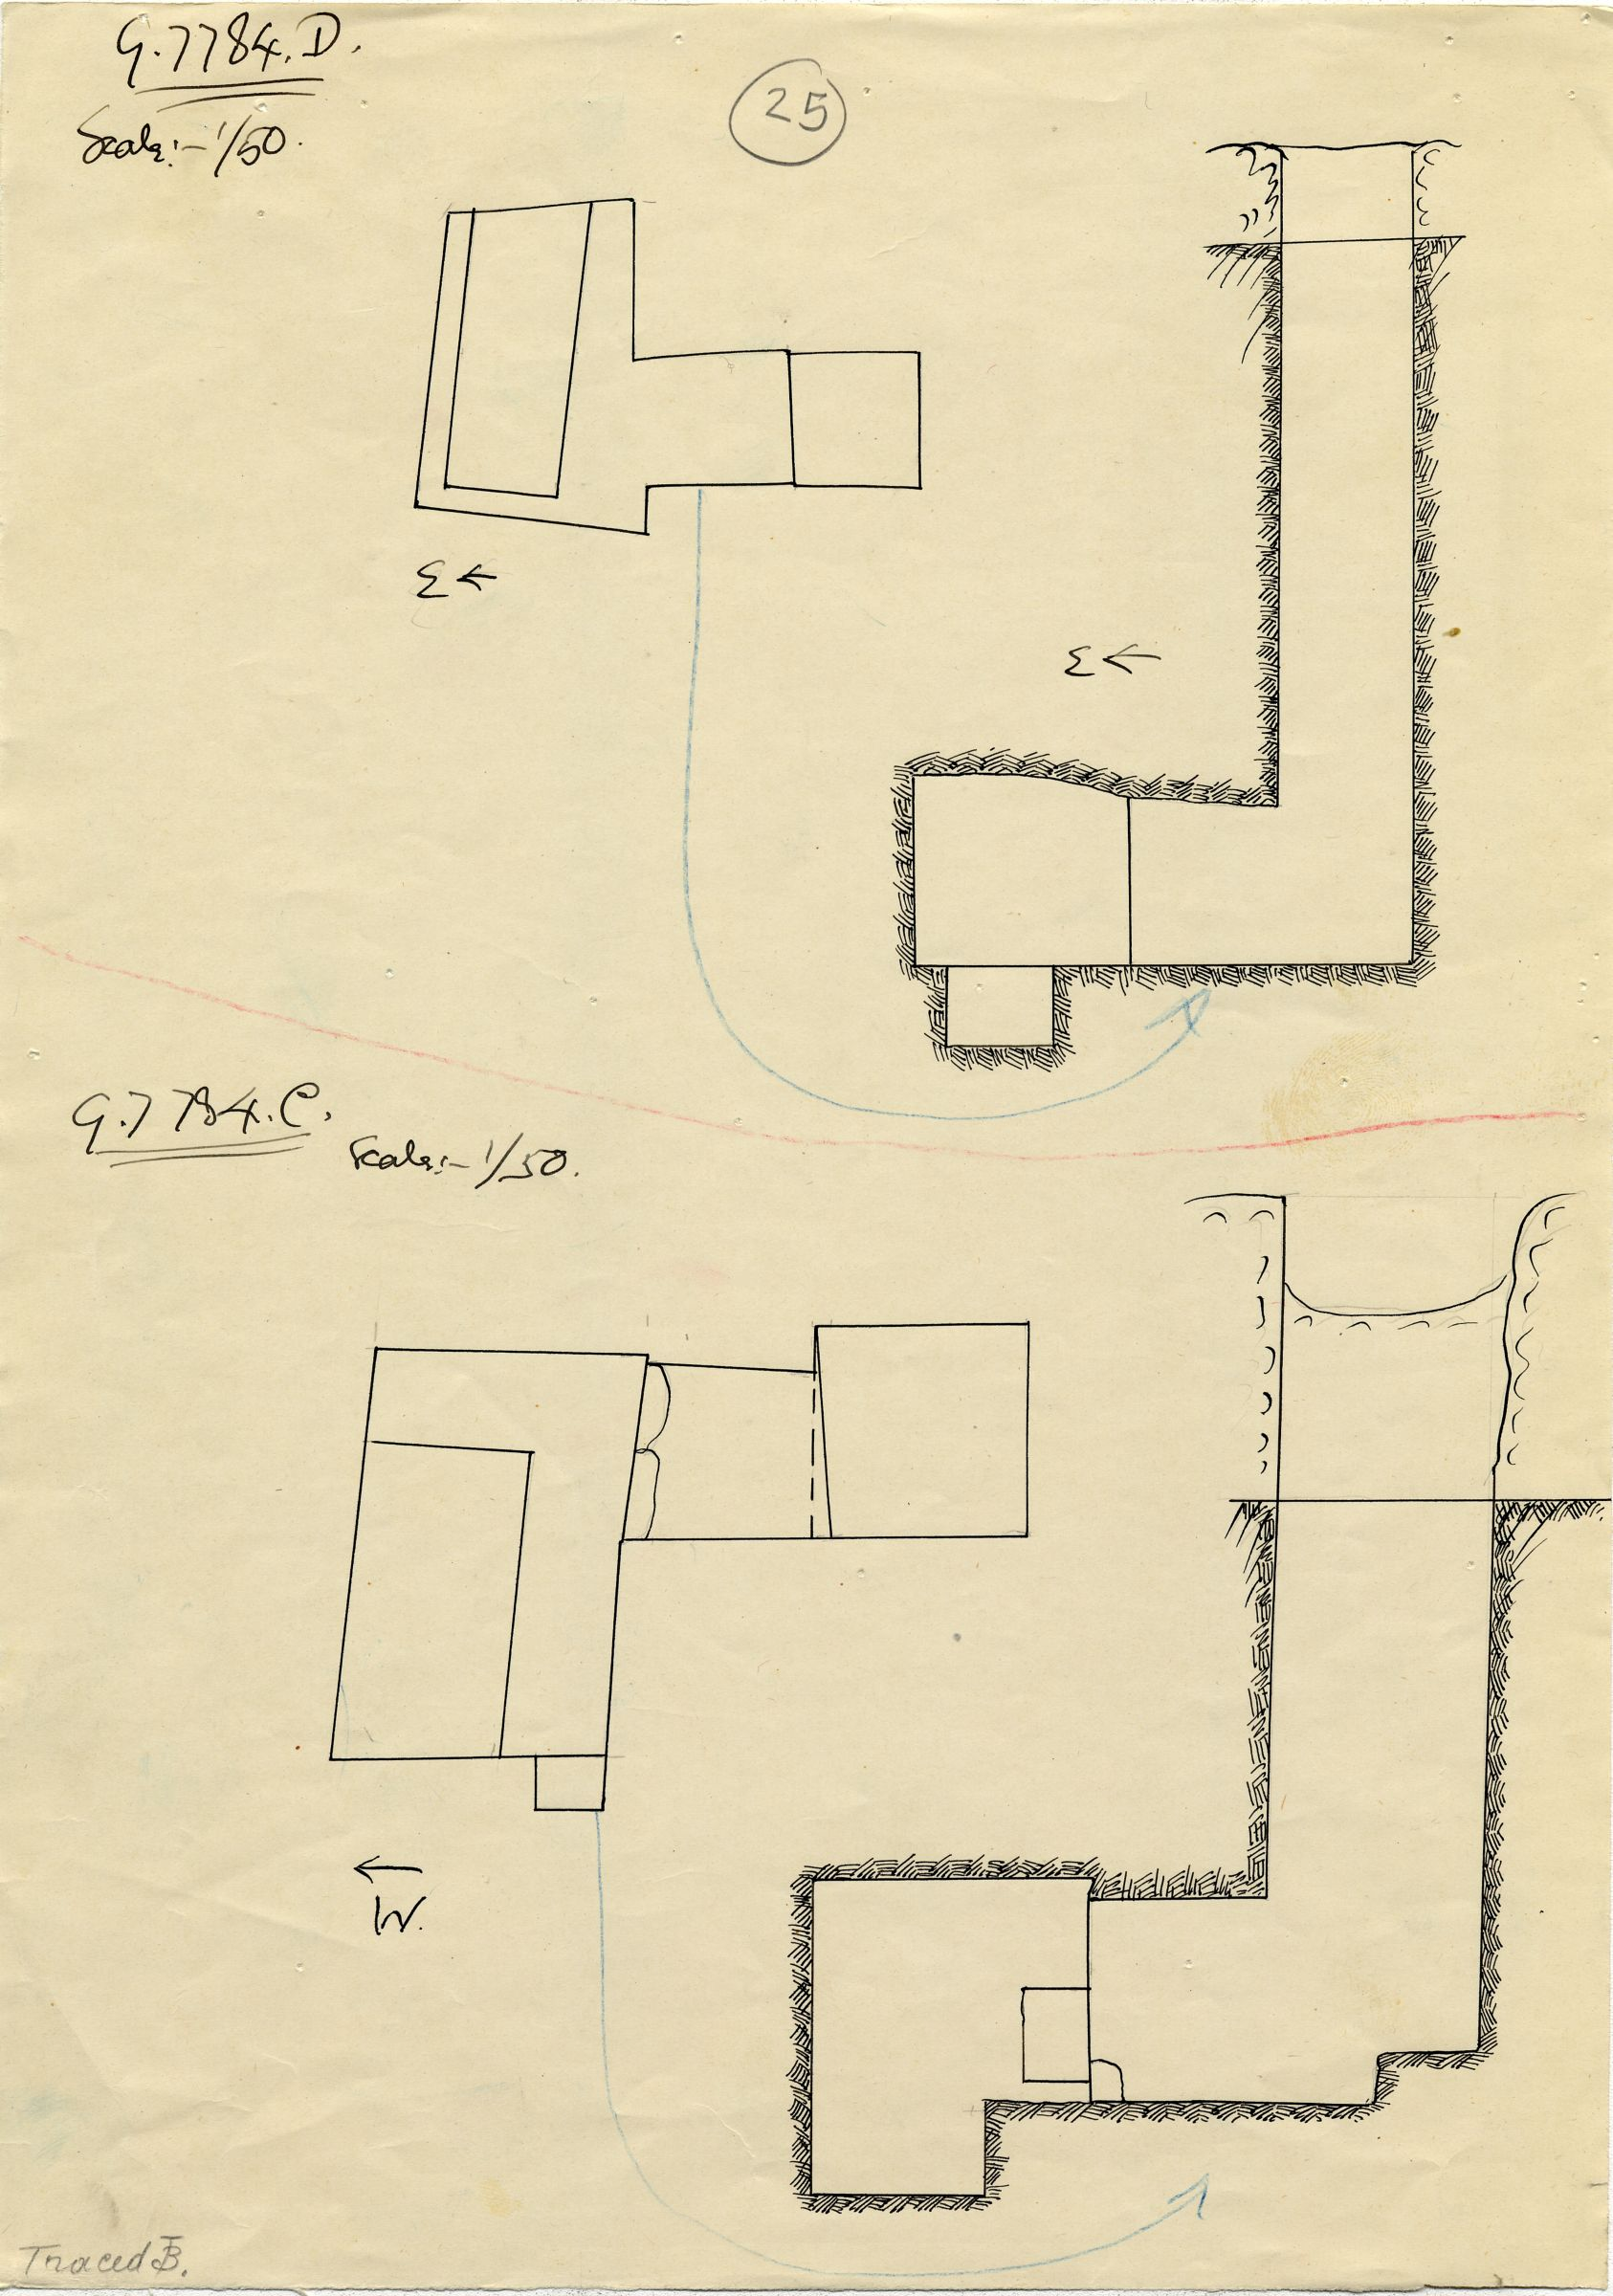 Maps and plans: G 7784, Shaft C and D